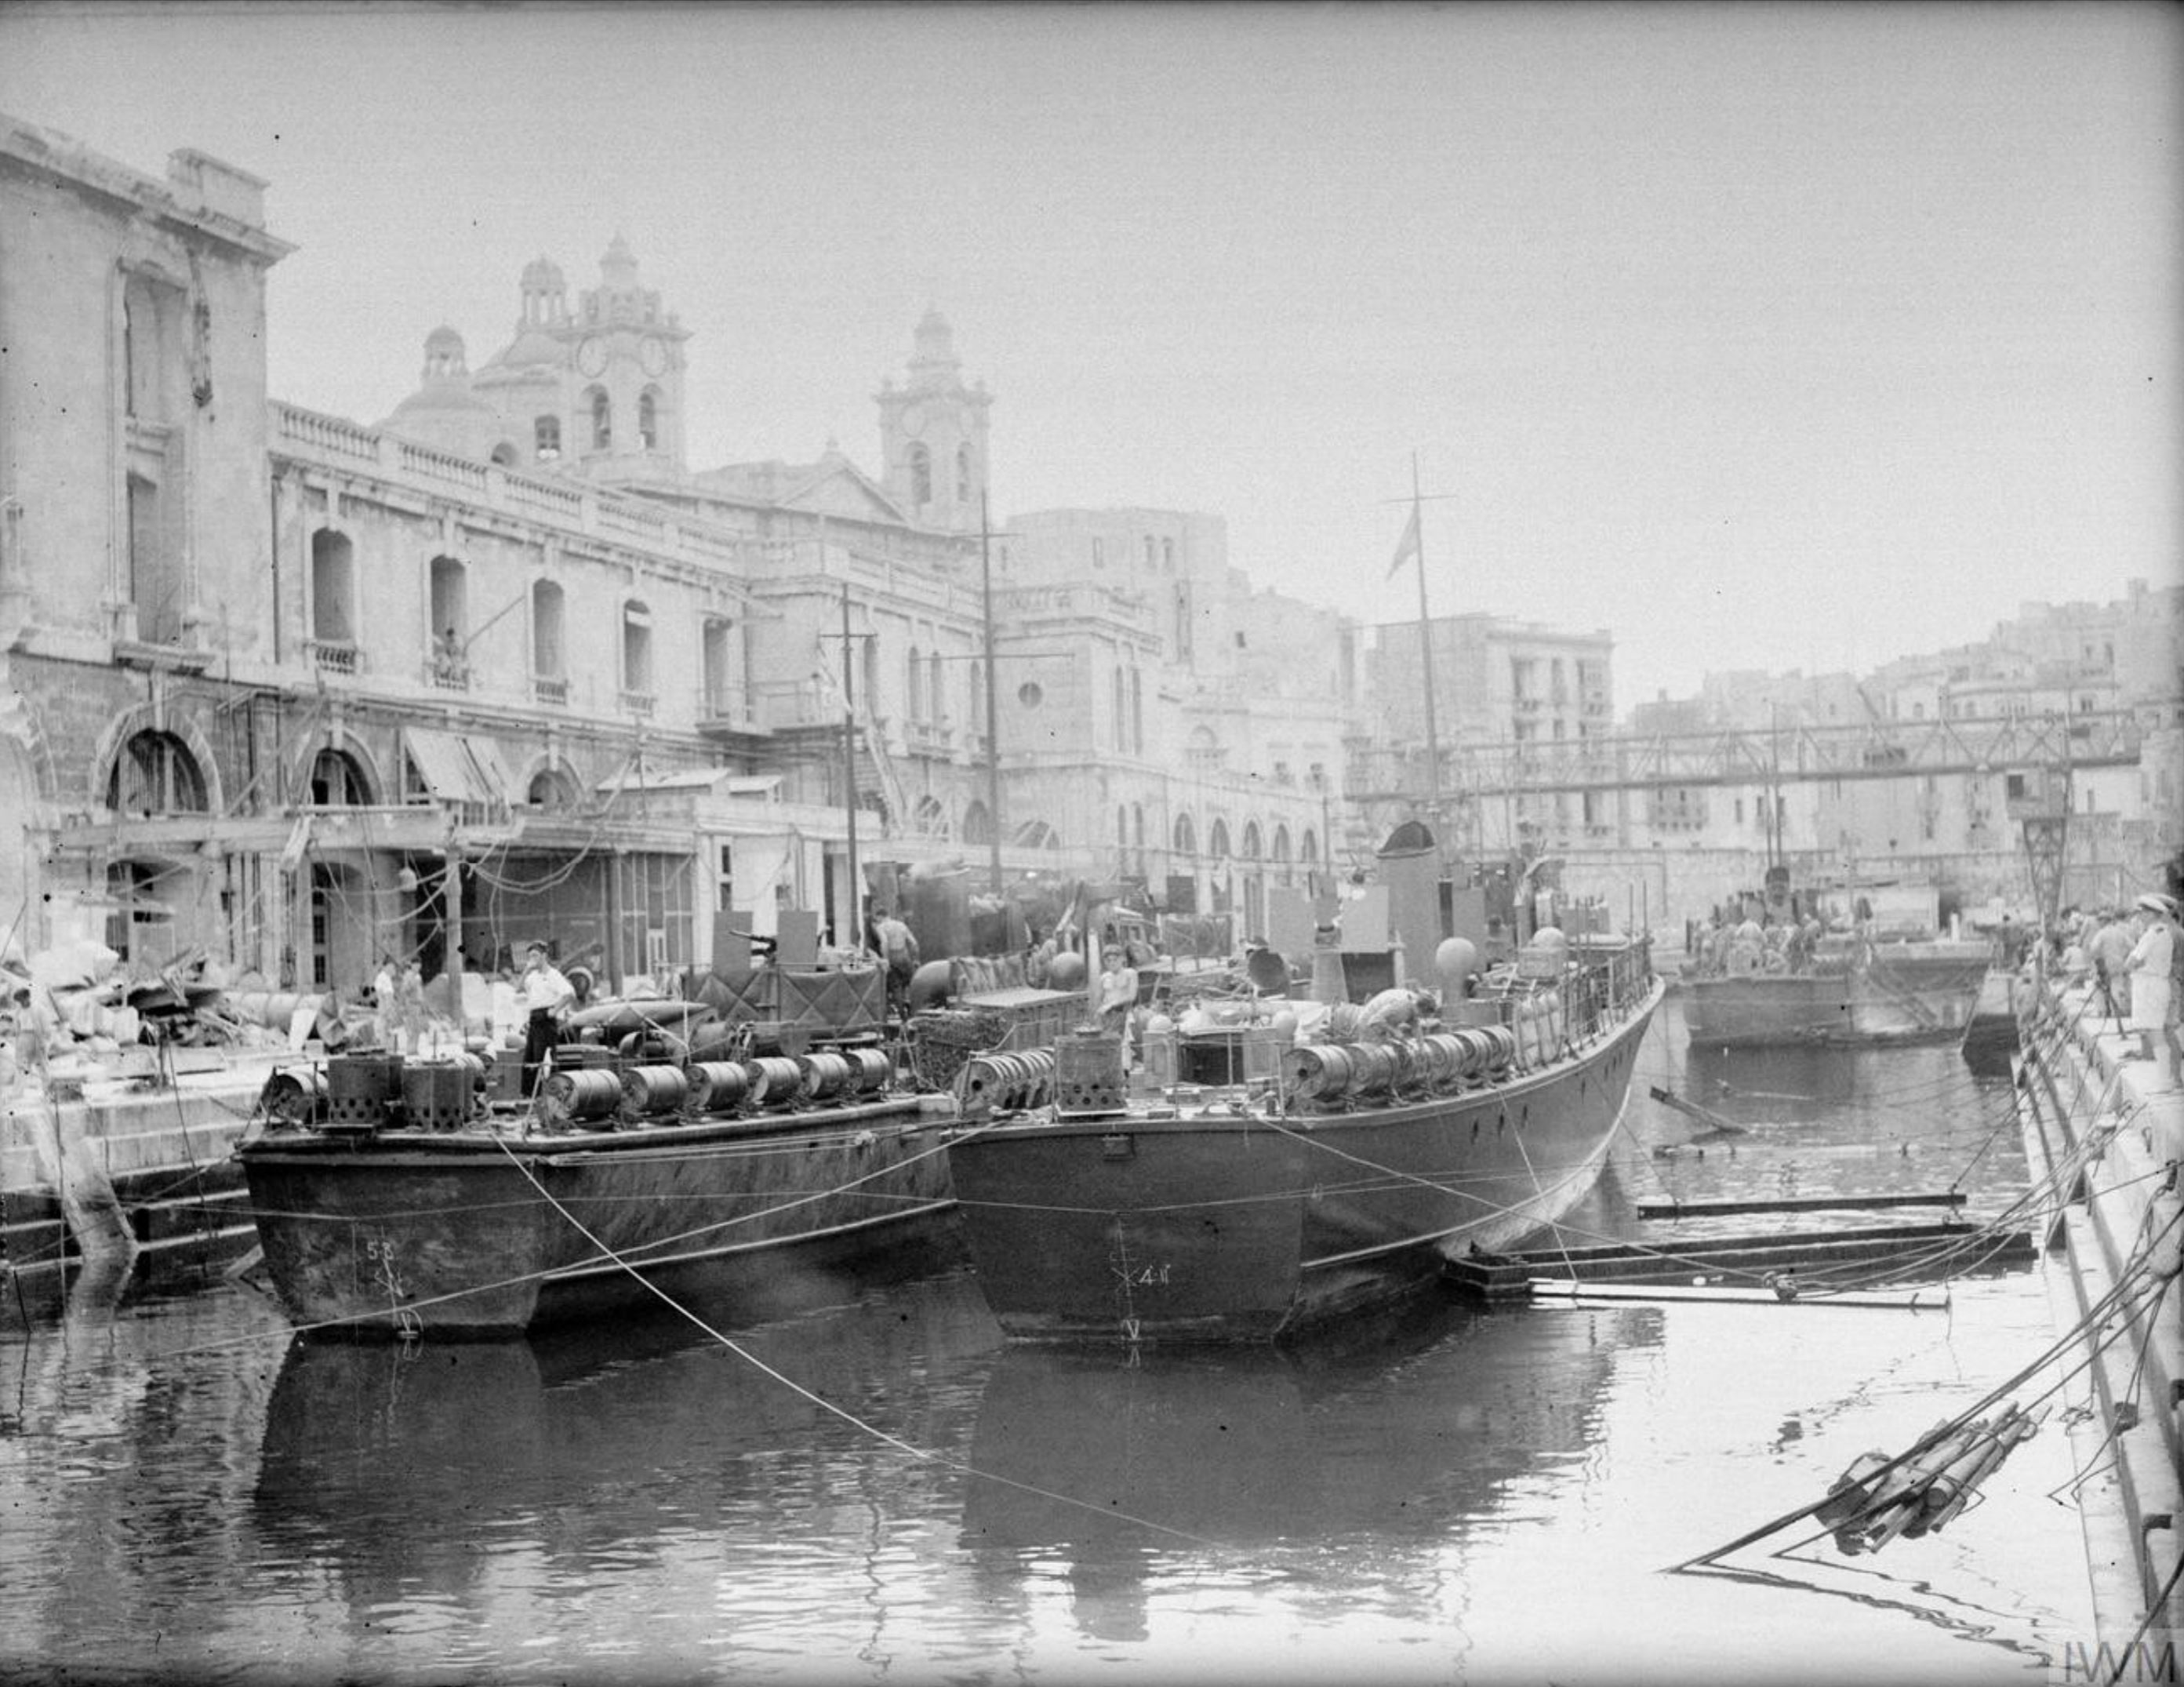 Motor Launches docked for repairs in no1 Grand Harbour Malta 19 24 Aug 1942 IWM A11492